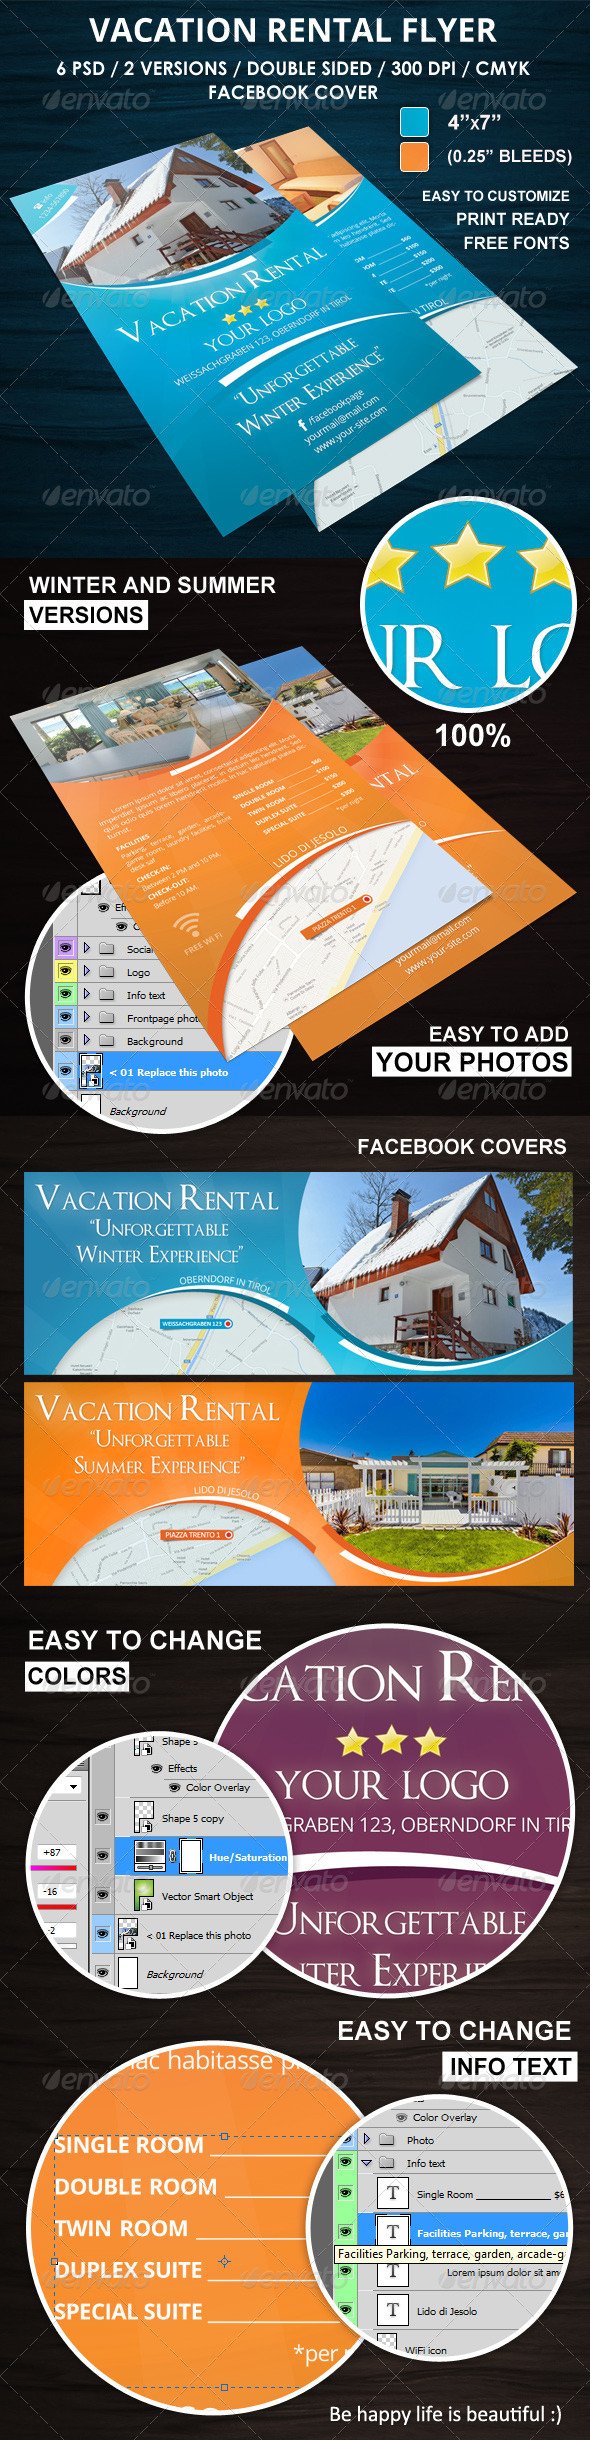 GraphicRiver Vacation Rental Flyer 6073049